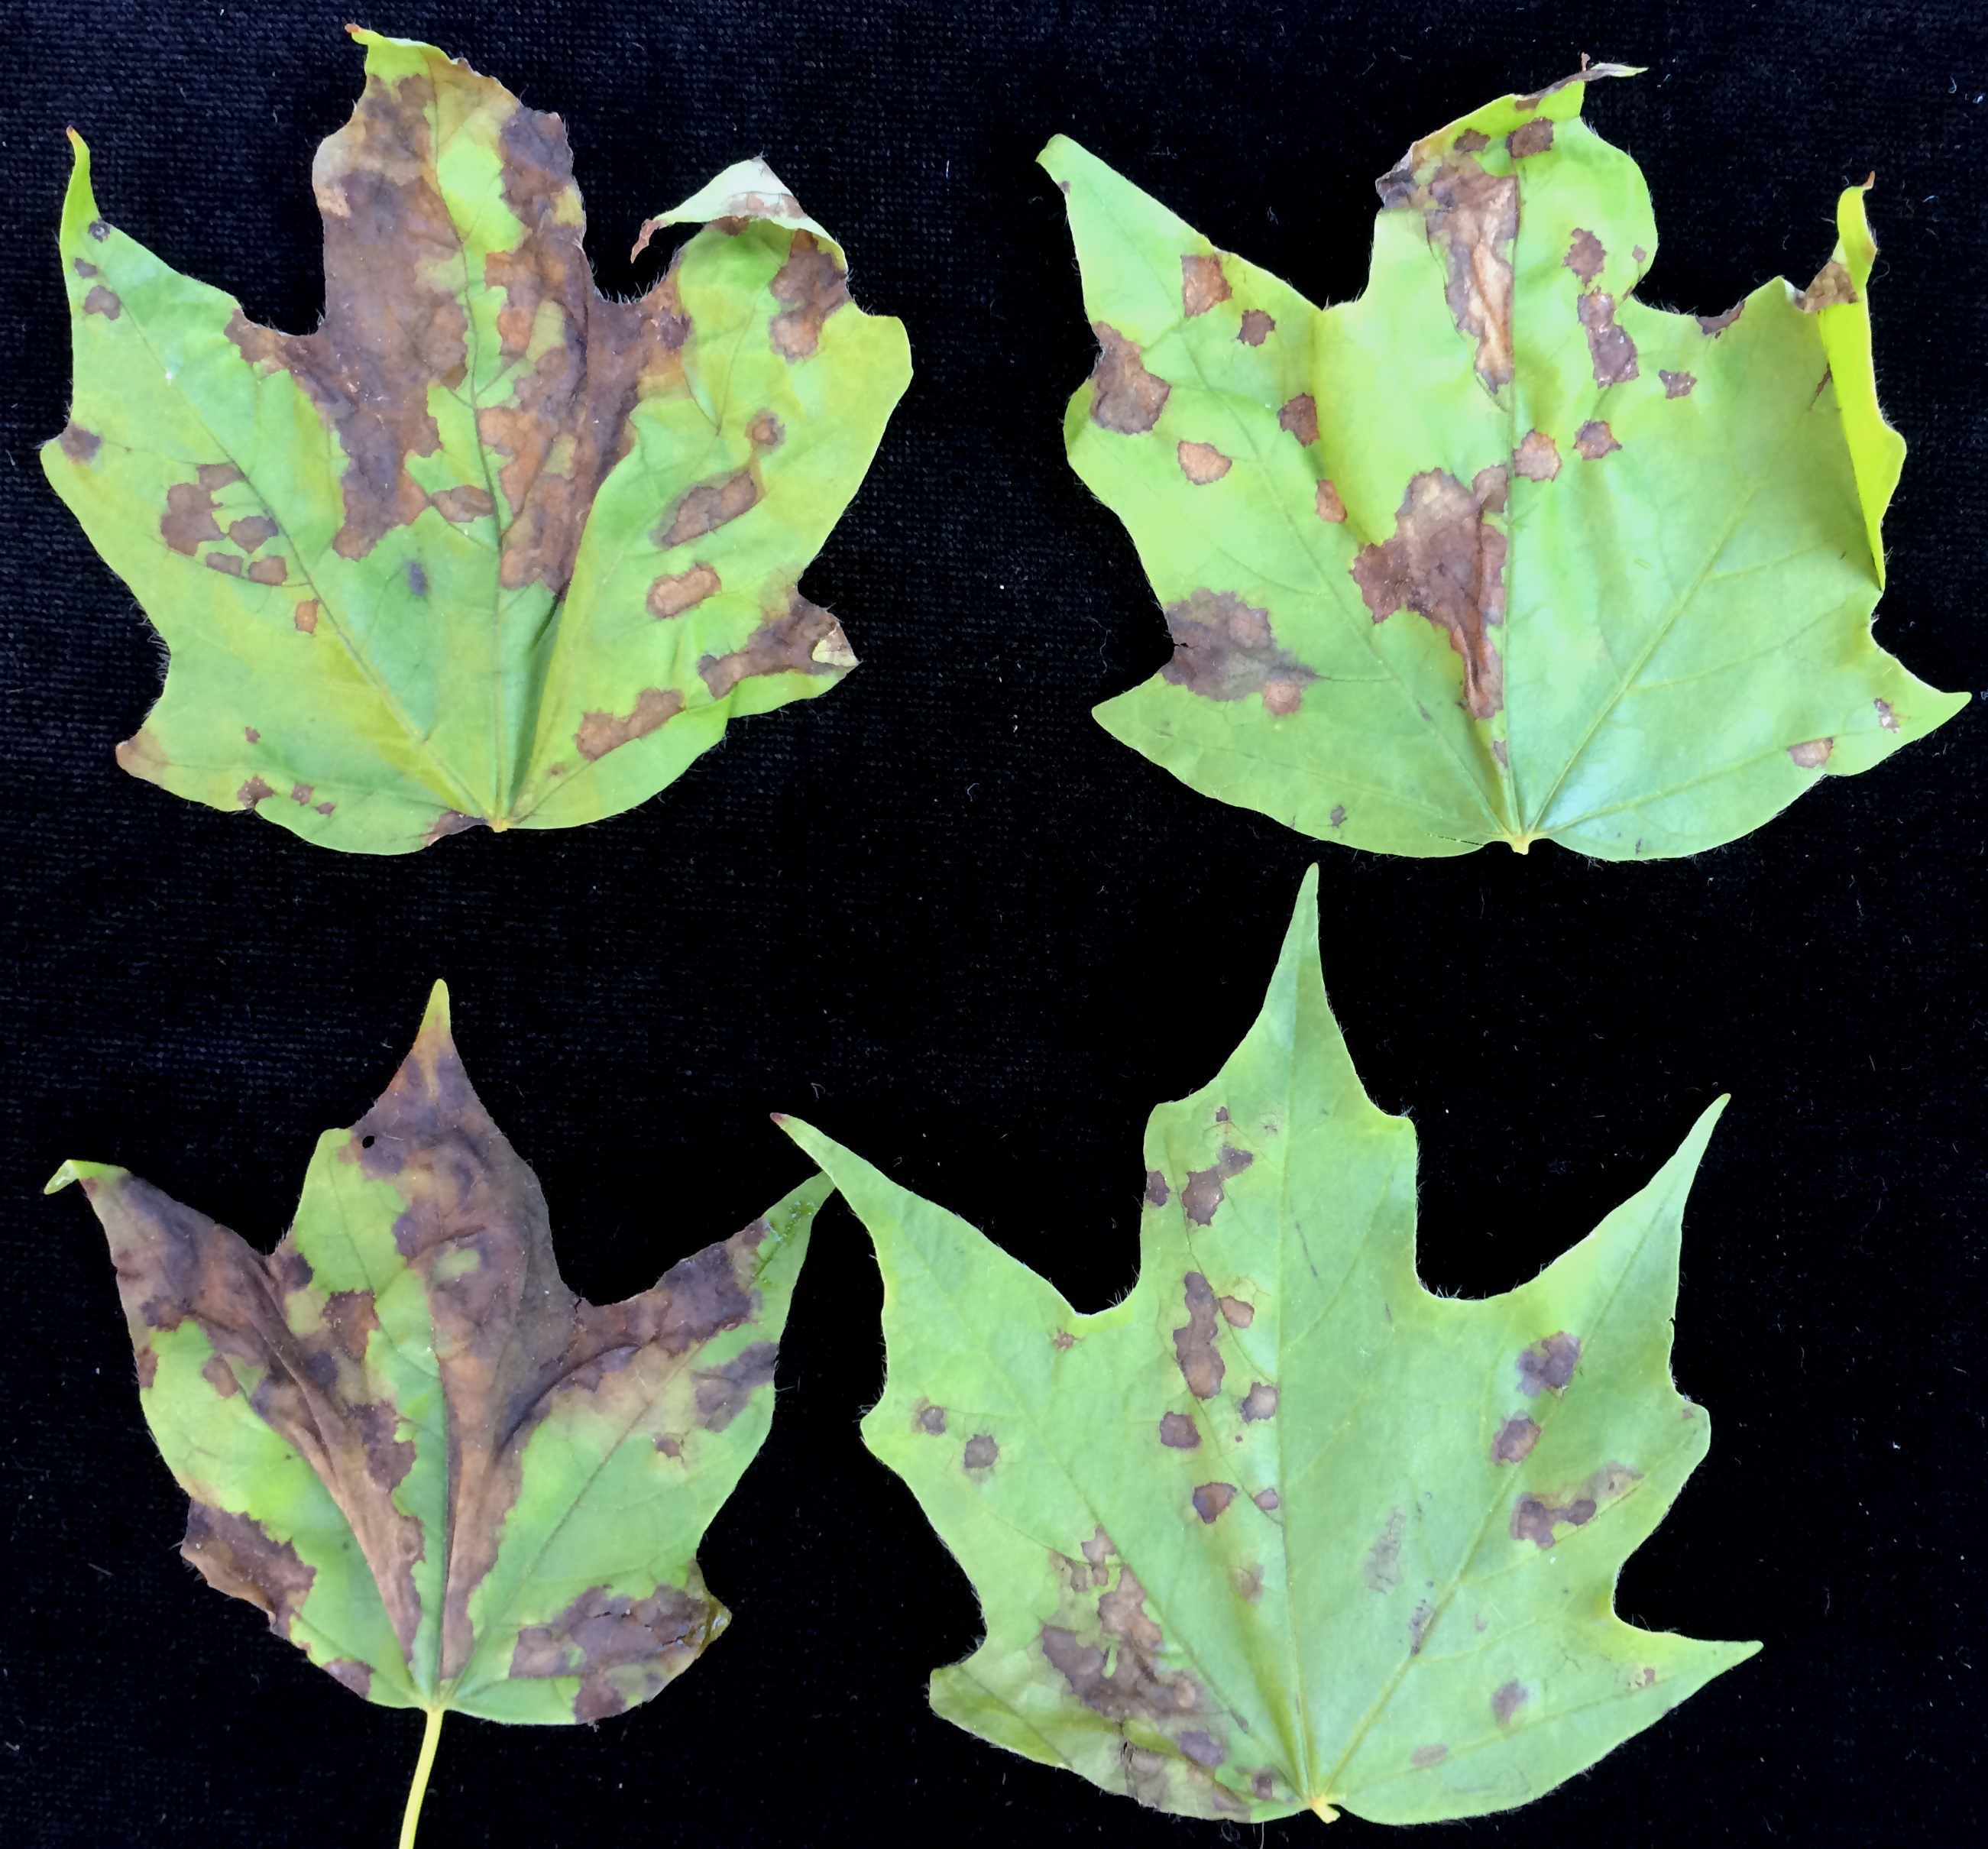 Anthracnose Of Maple Center For Agriculture Food And The - Norway maple vs sugar maple